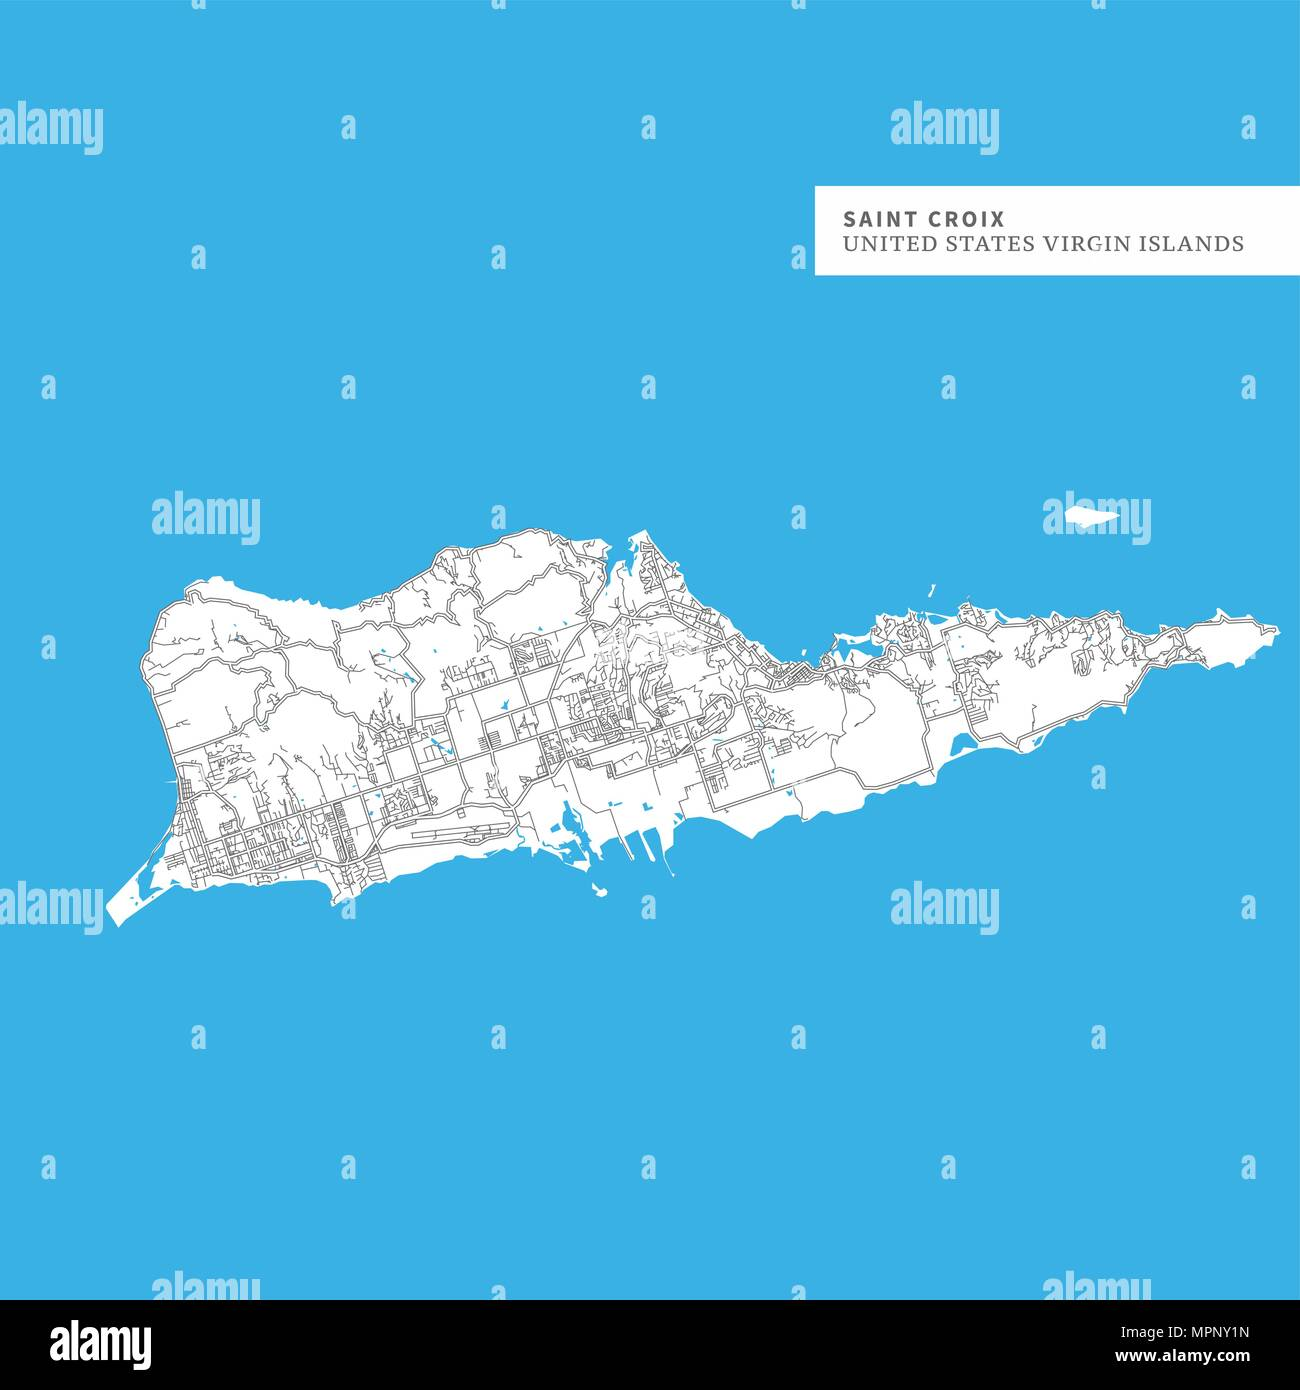 Map of Saint Croix Island, United States Virgin Islands, contains ...